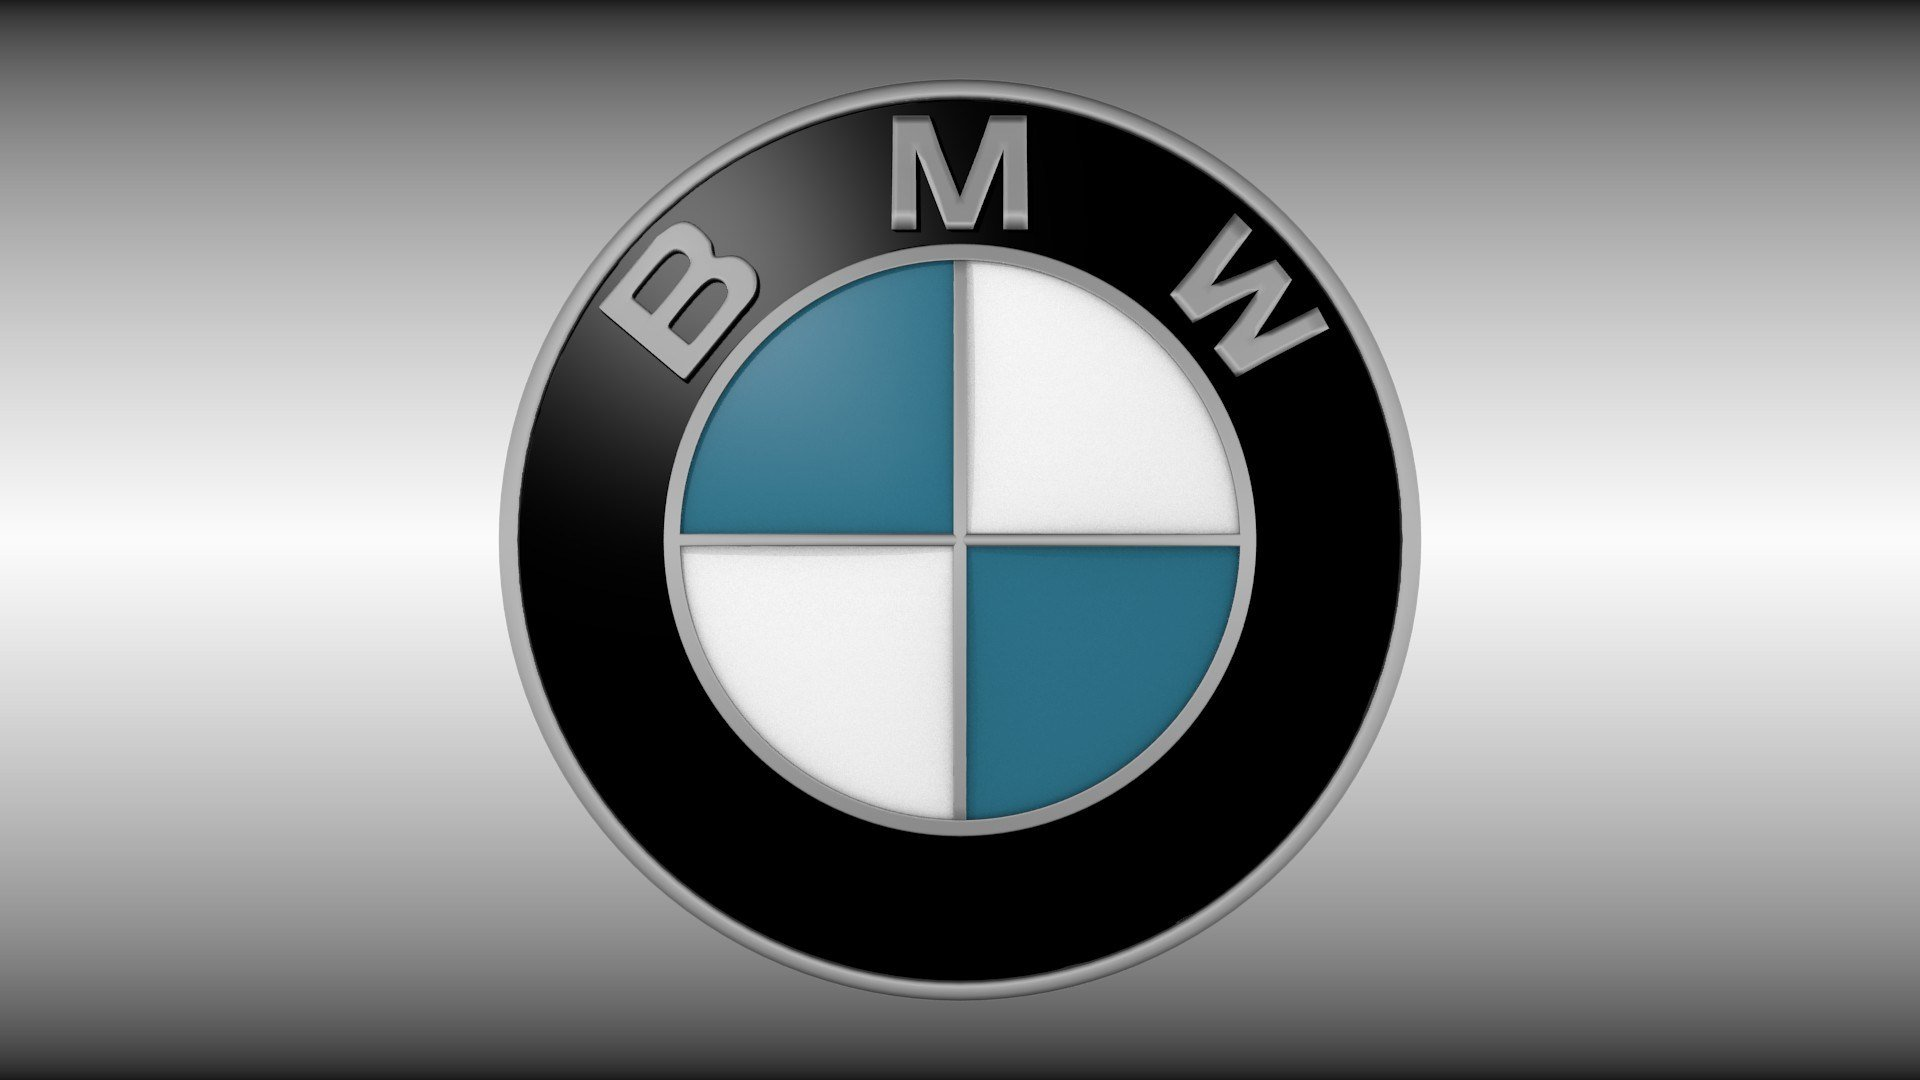 Bmw Emblem Wallpaper Posted By Sarah Sellers